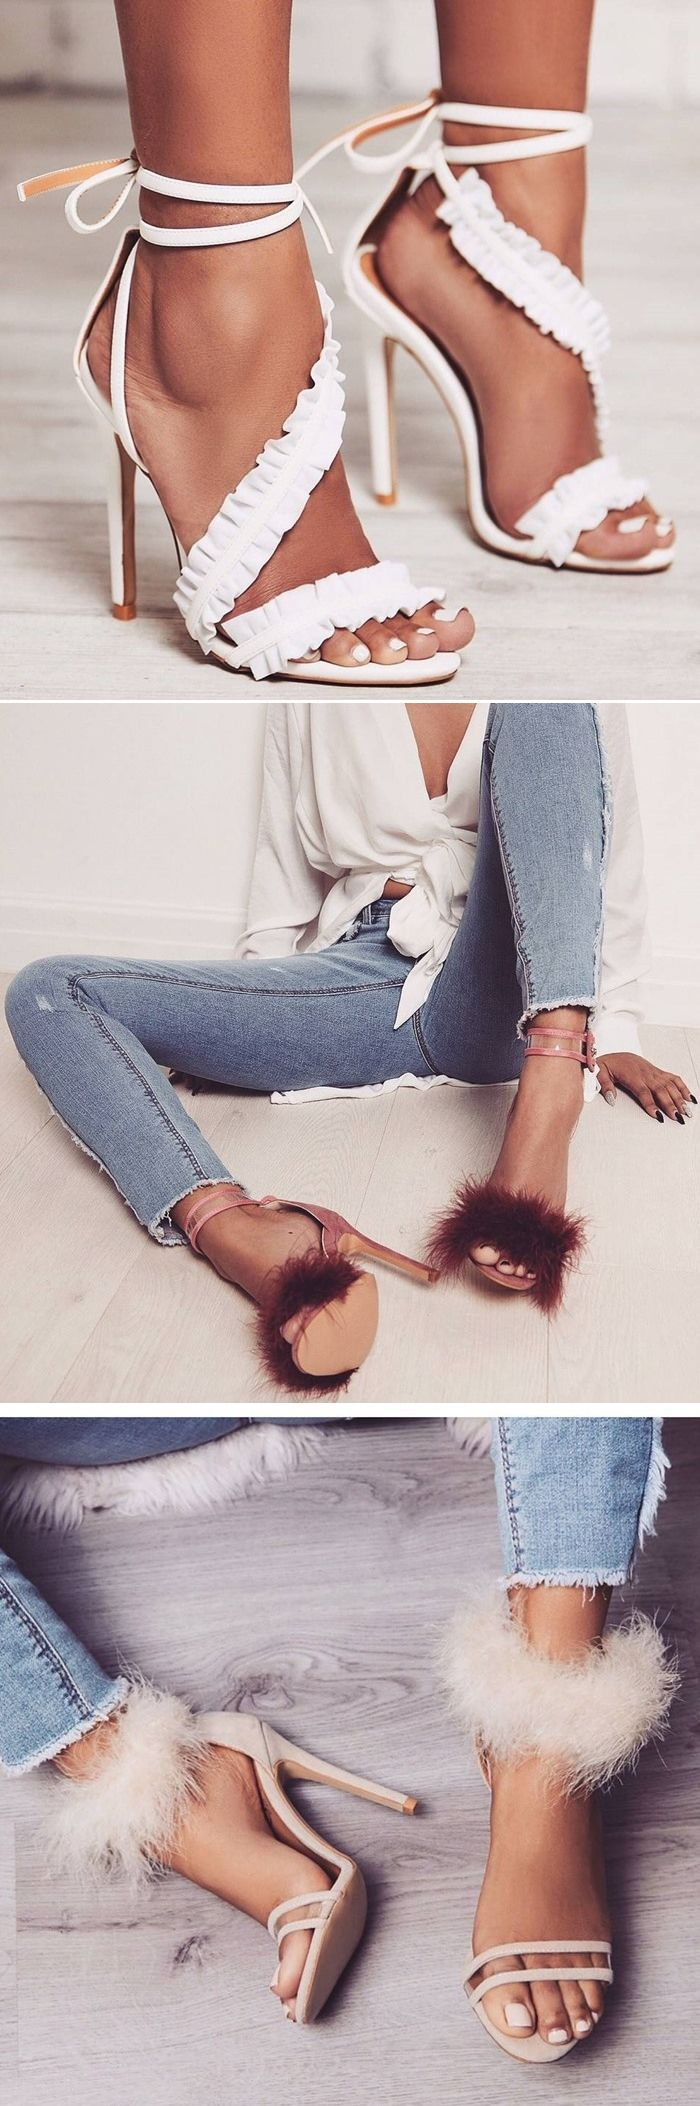 20 Inexpensive Women's Shoes for Summer 2017